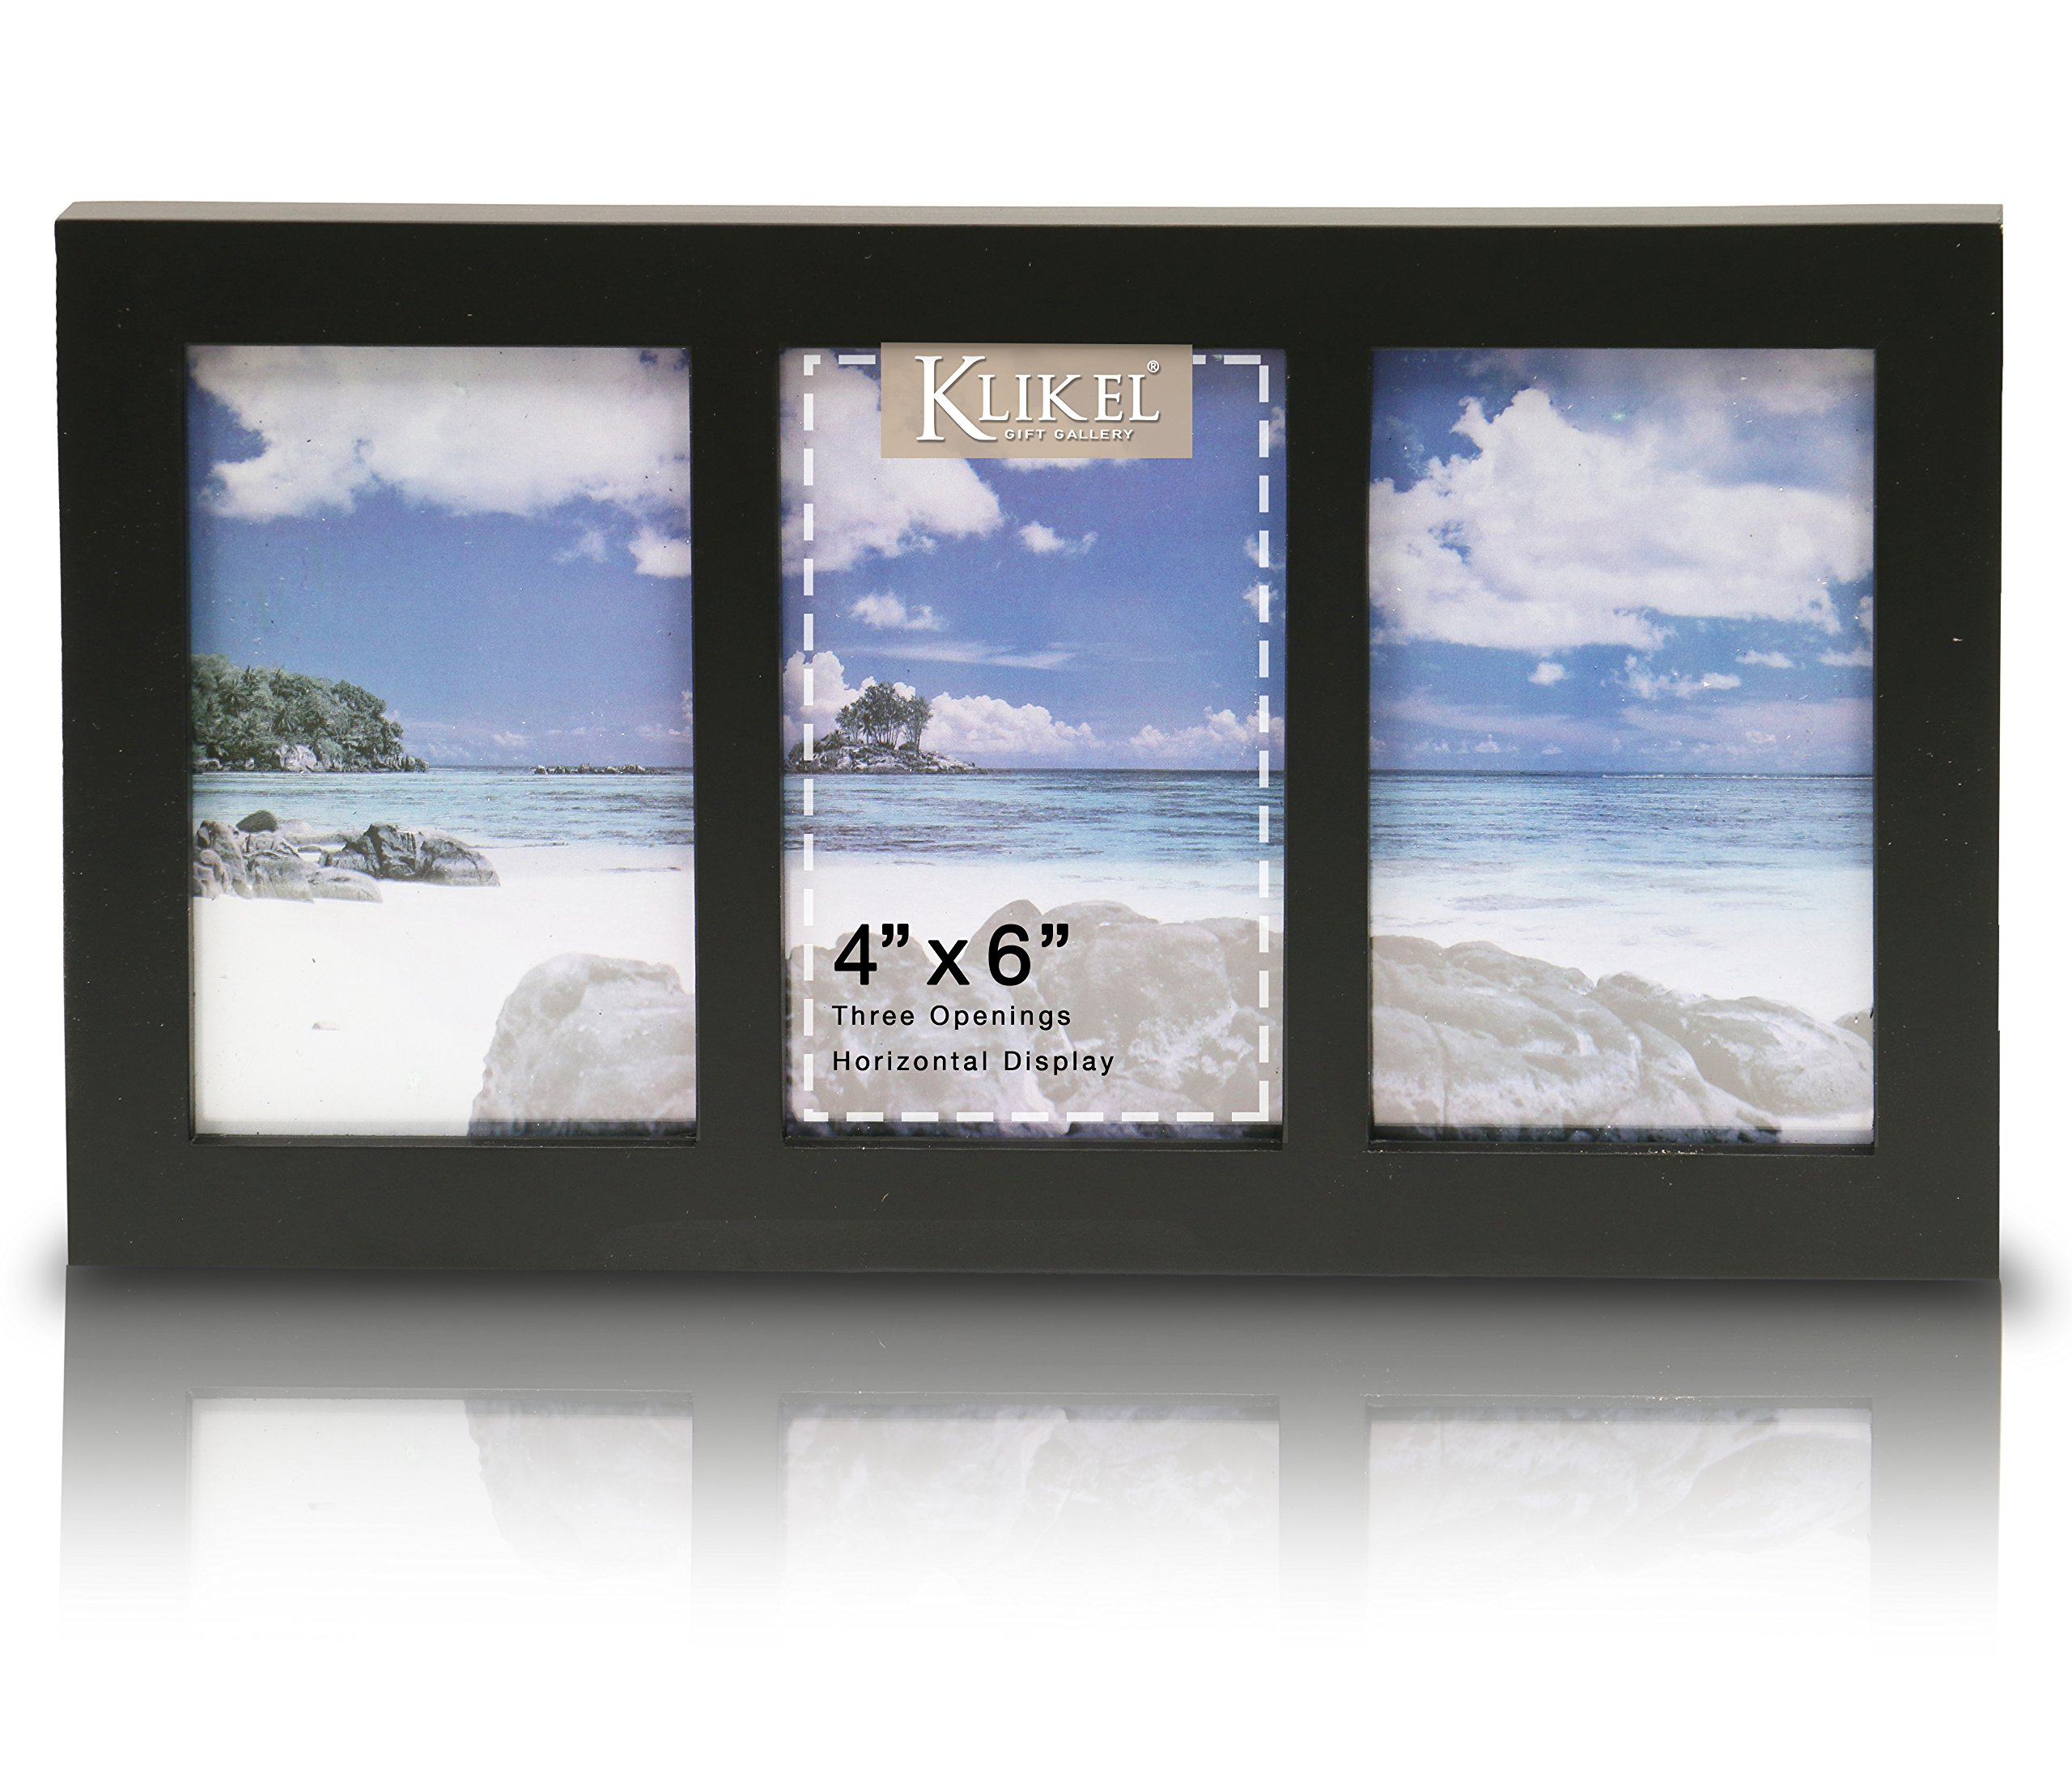 Klikel Photo Collage Frame | Black Wooden Wall Frame | 3 Openings - 4x6 Pictures | Decorative Family Picture Frame by Klikel